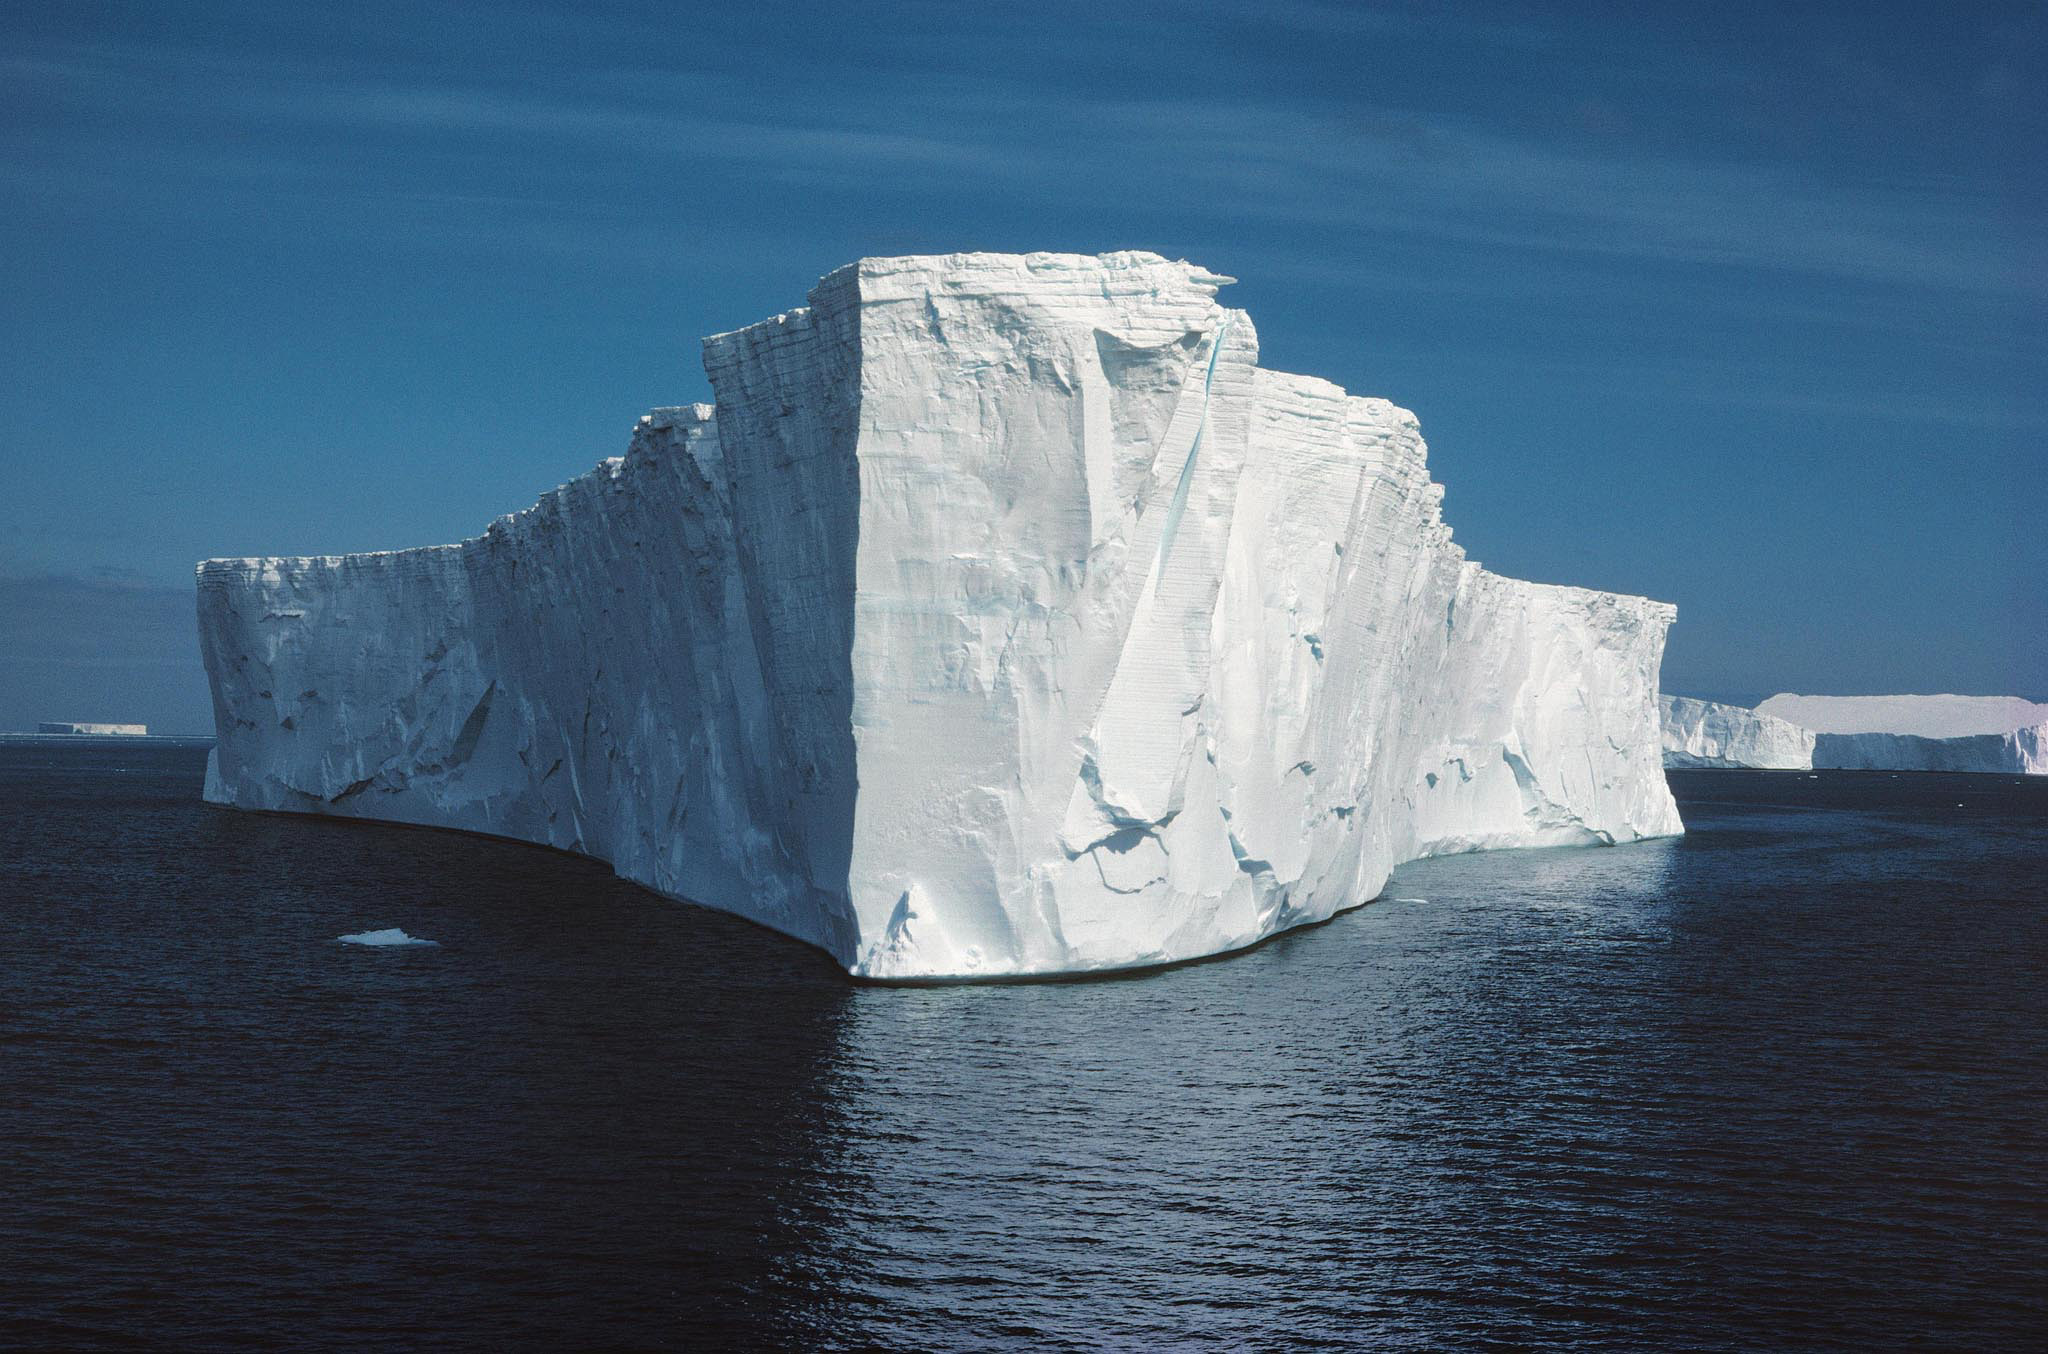 'Deeply concerning': Antarctic ice loss triples